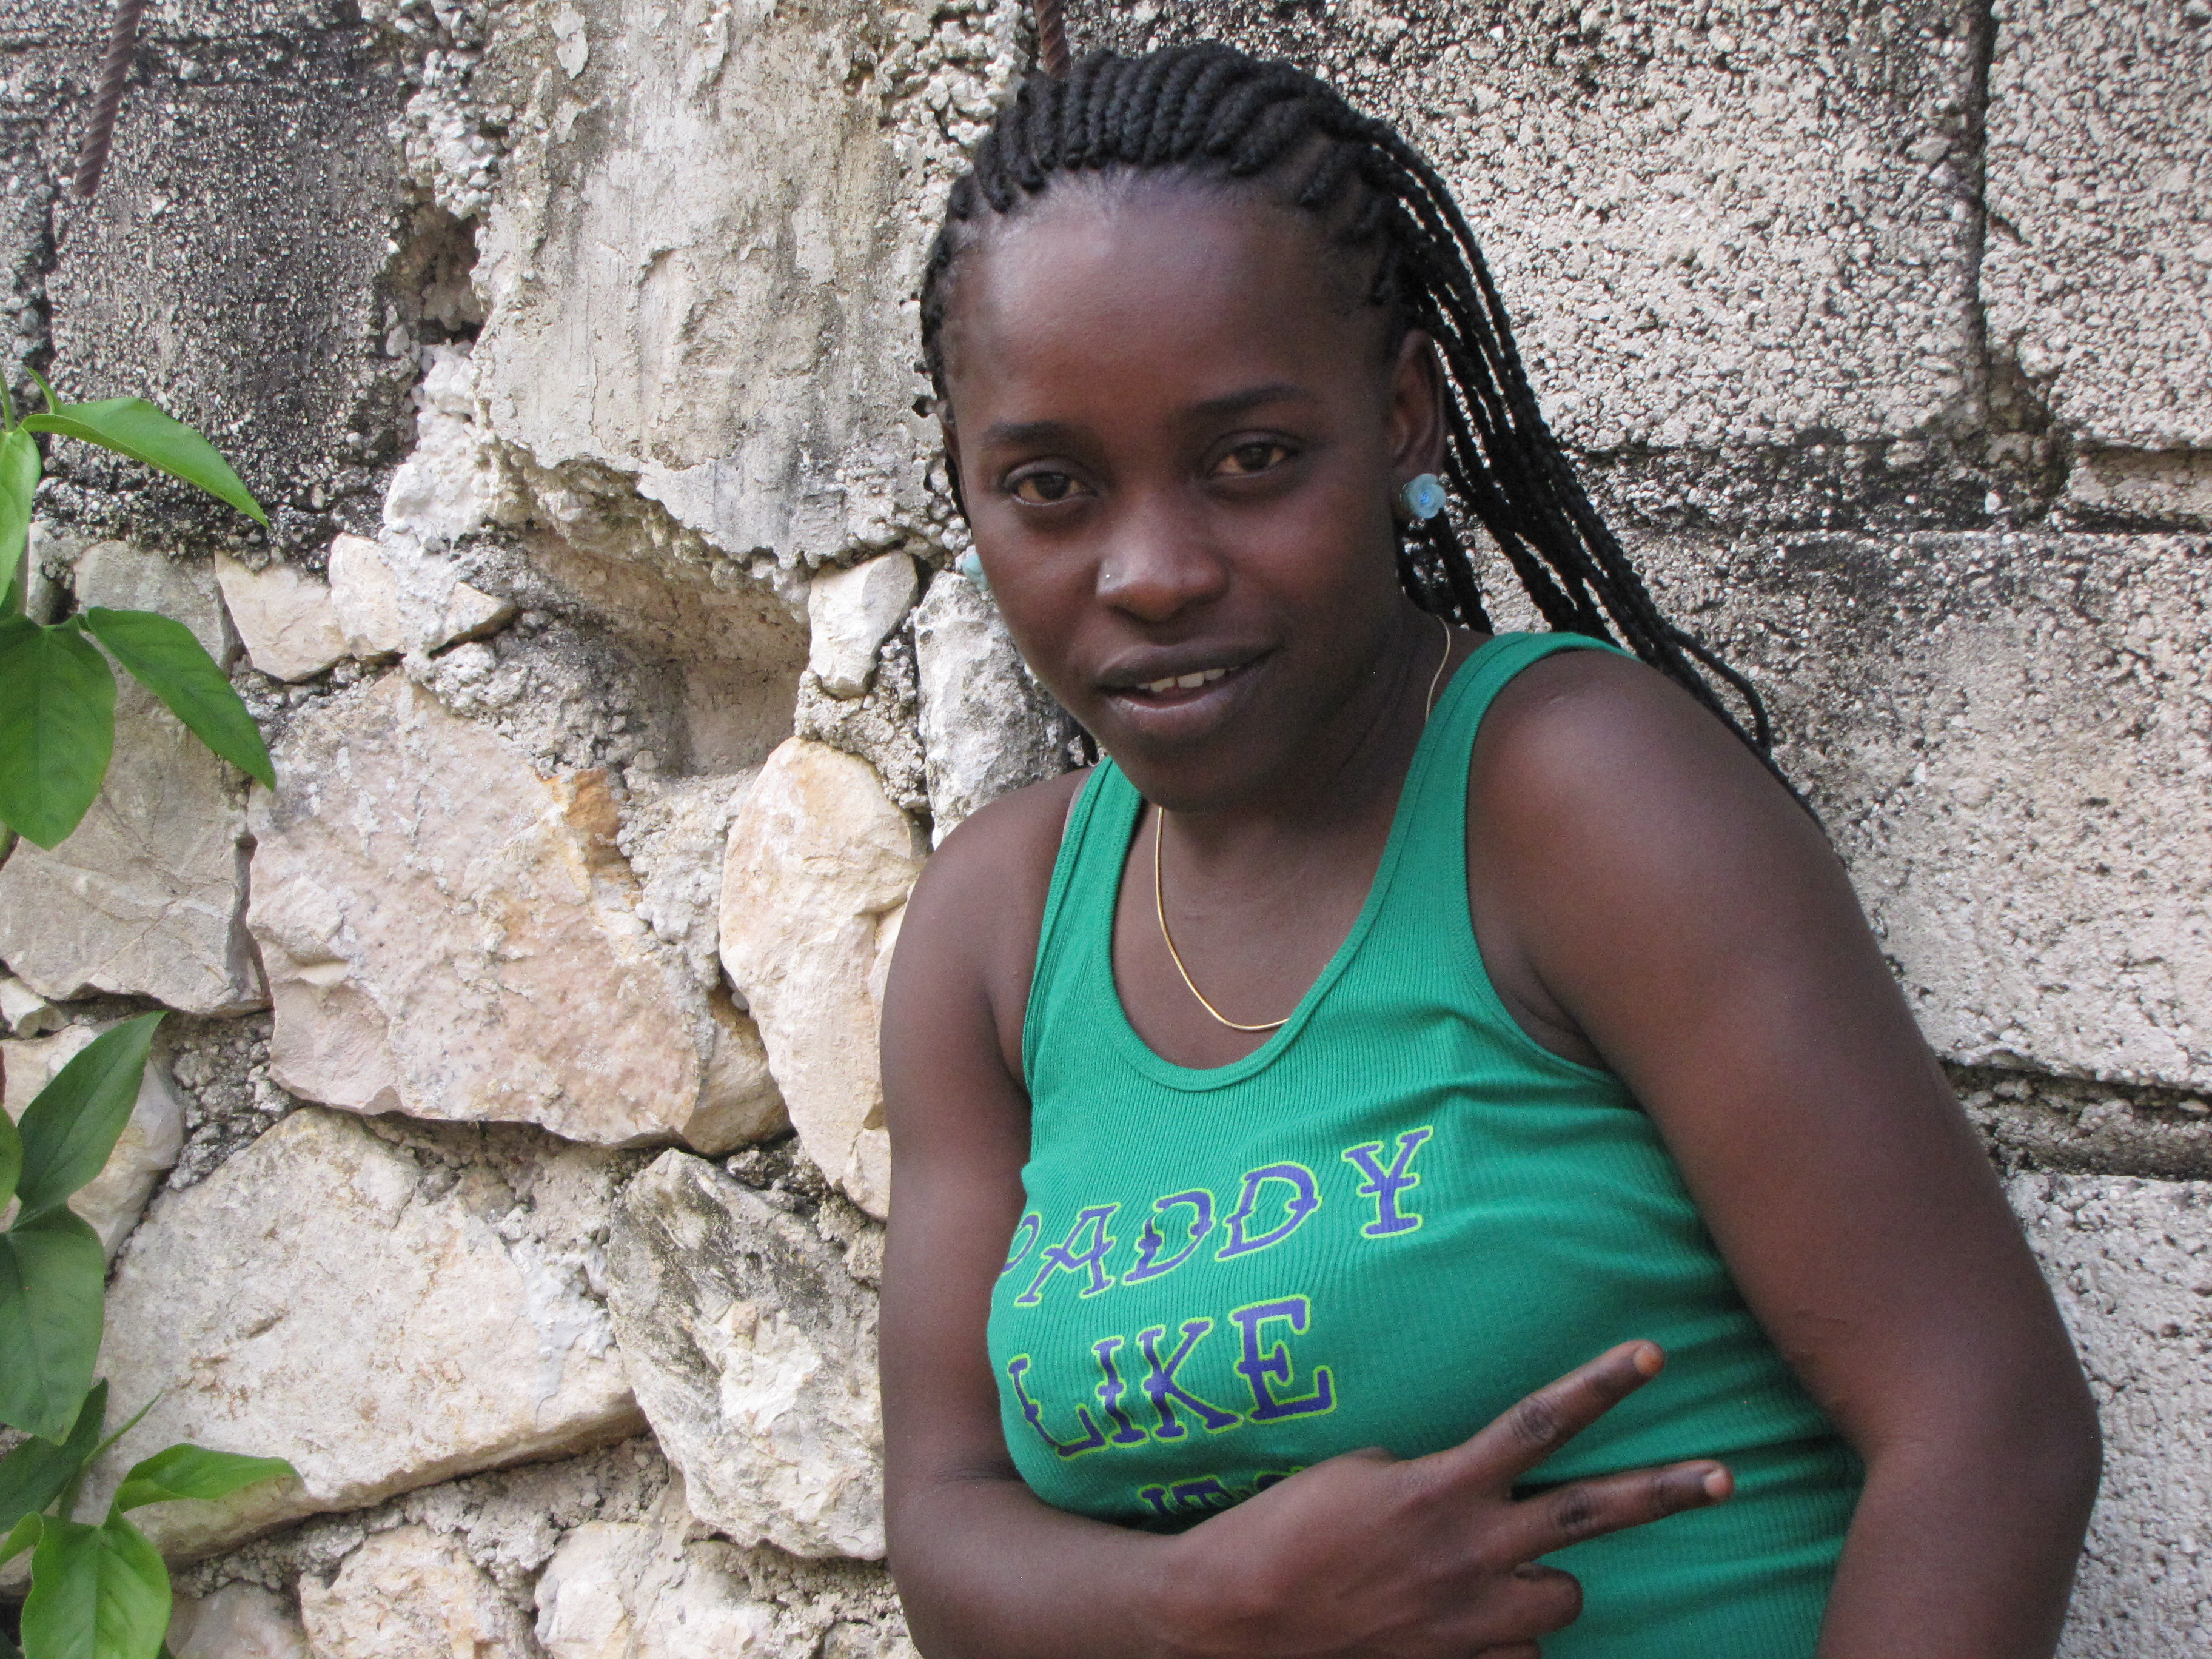 the voices of women in haiti essay Kourtney o'henry april 7, 2014 the voice of women in haiti for a long period of time, women struggled to find a voice history has shown that women had to.